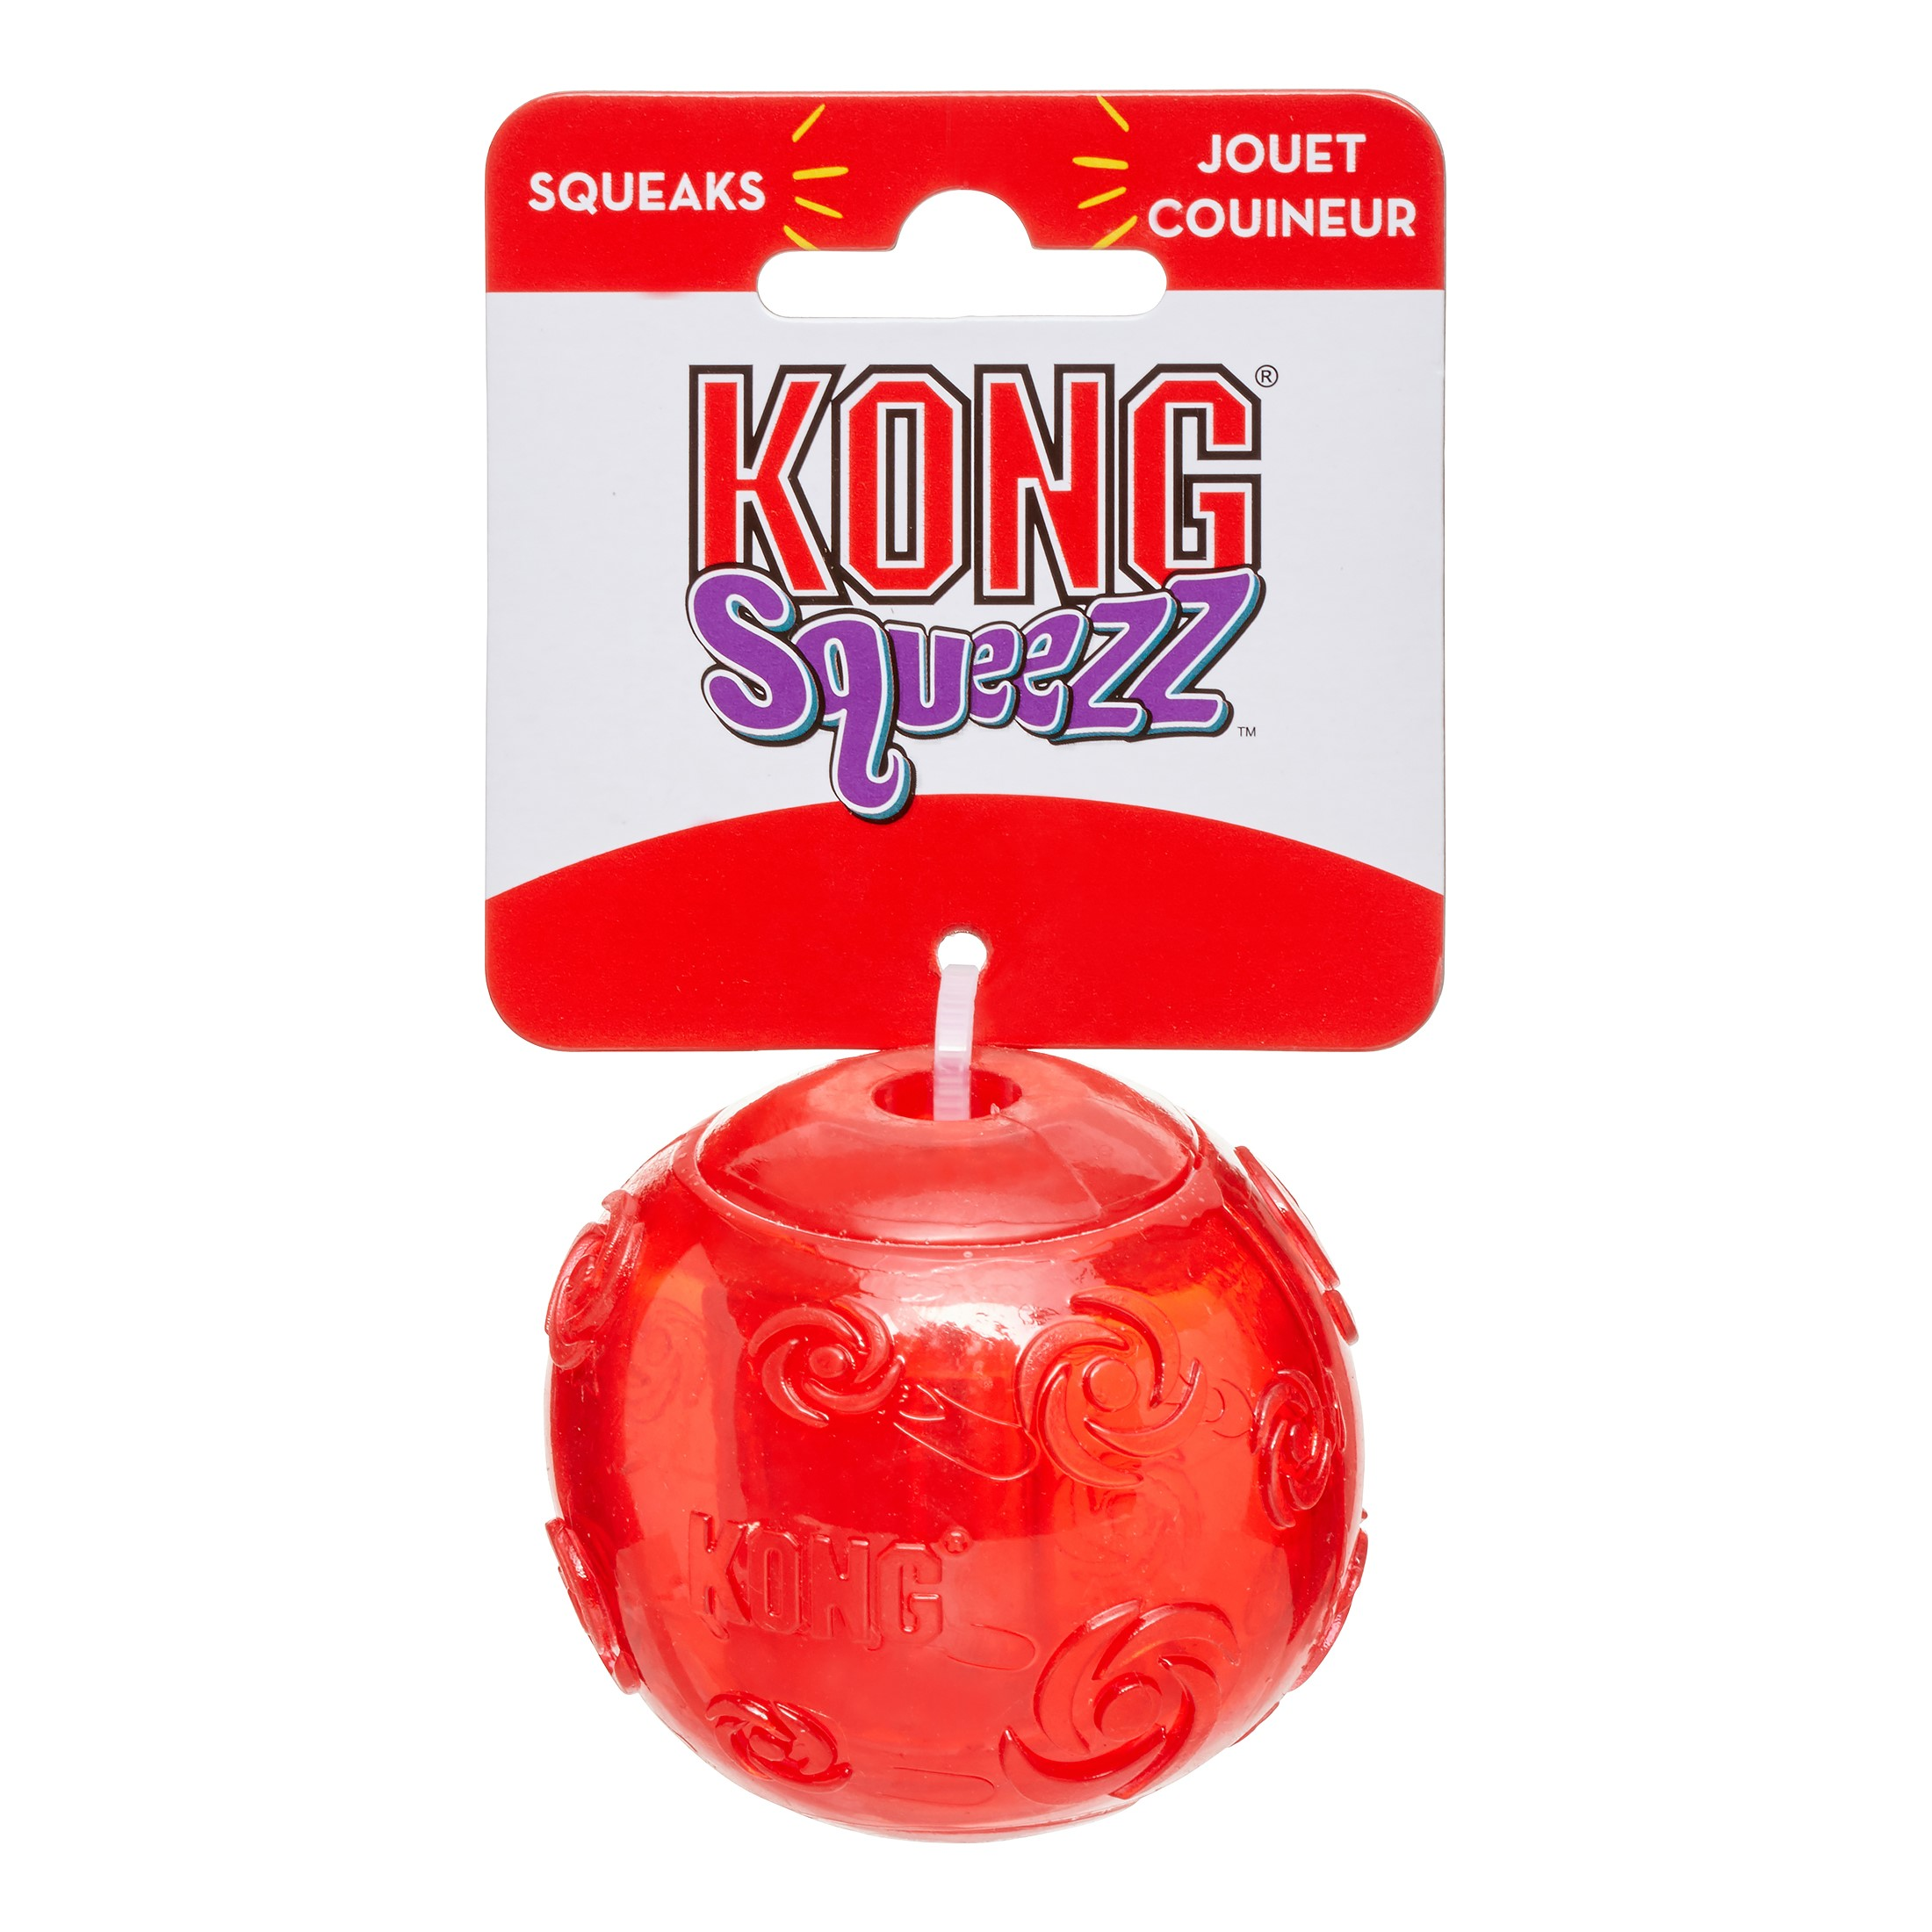 KONG Squeezz Ball Dog Toy, Medium, Assorted Colors